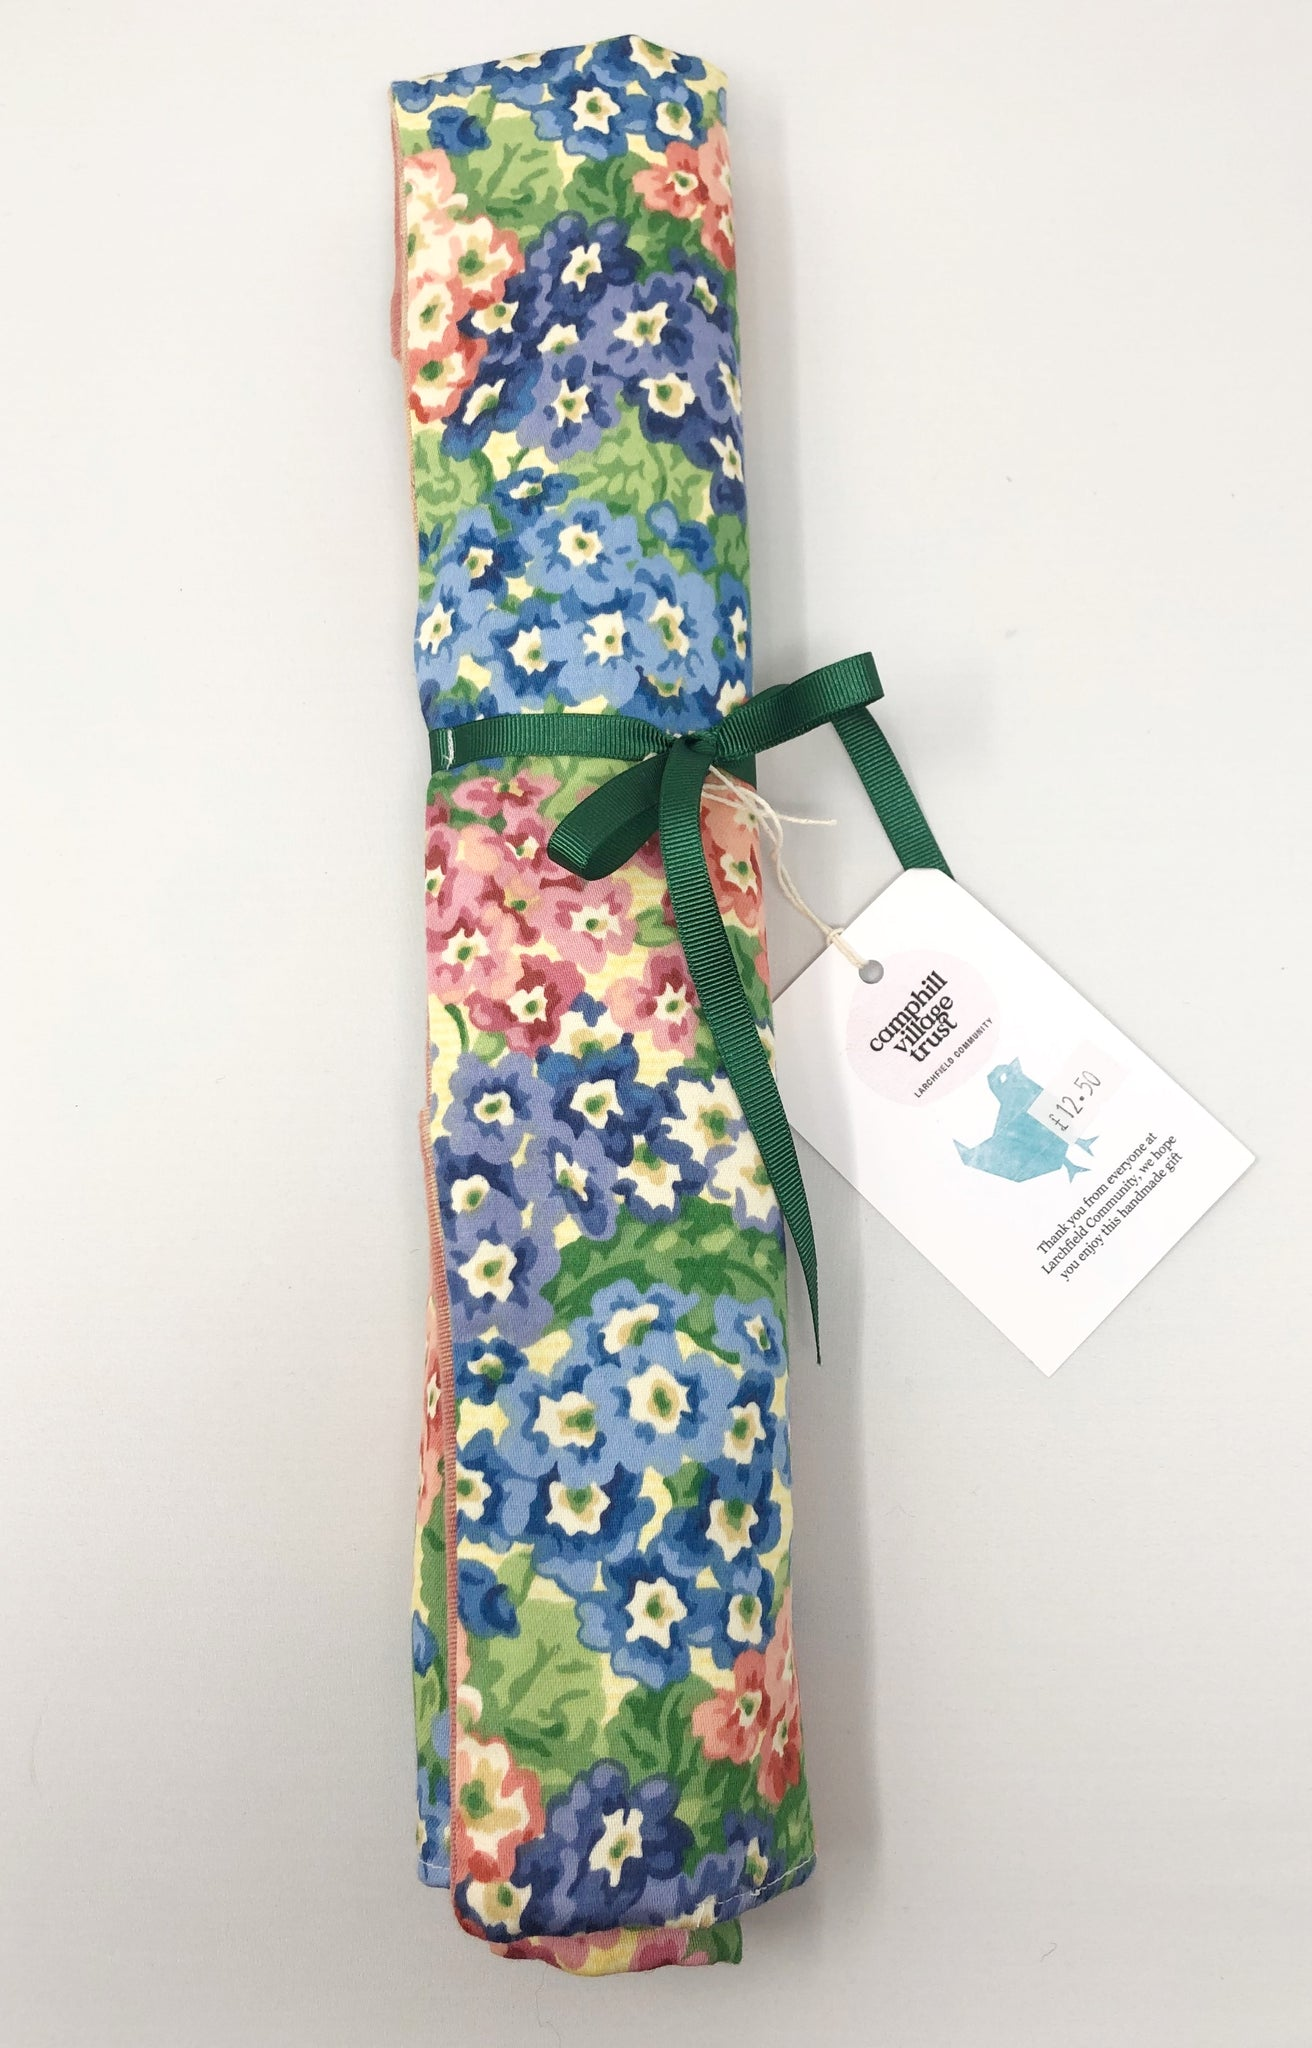 Knitting needle case with needles